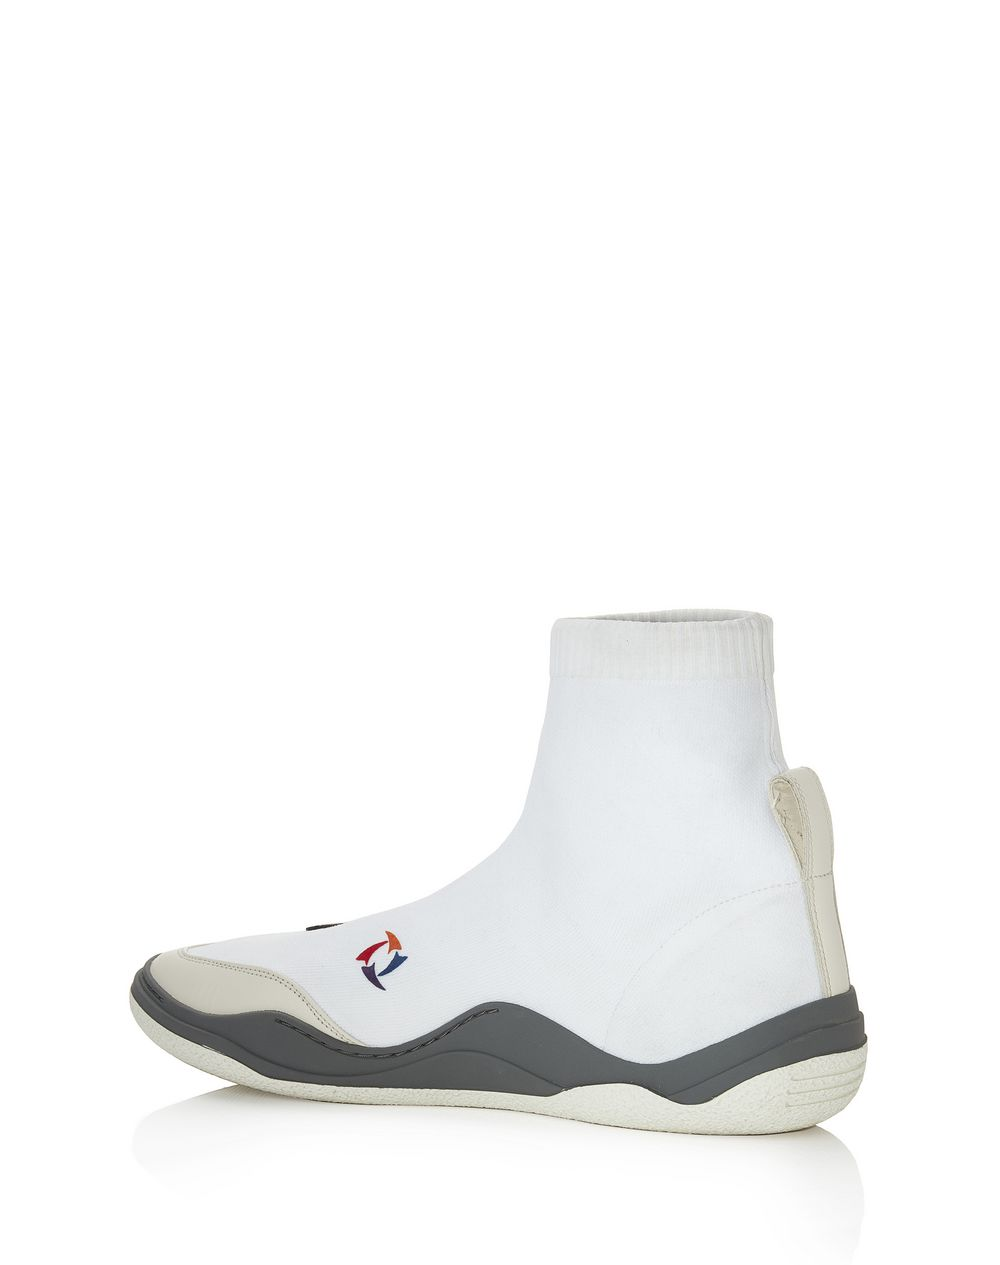 HIGH-TOP DIVING SNEAKER - Lanvin